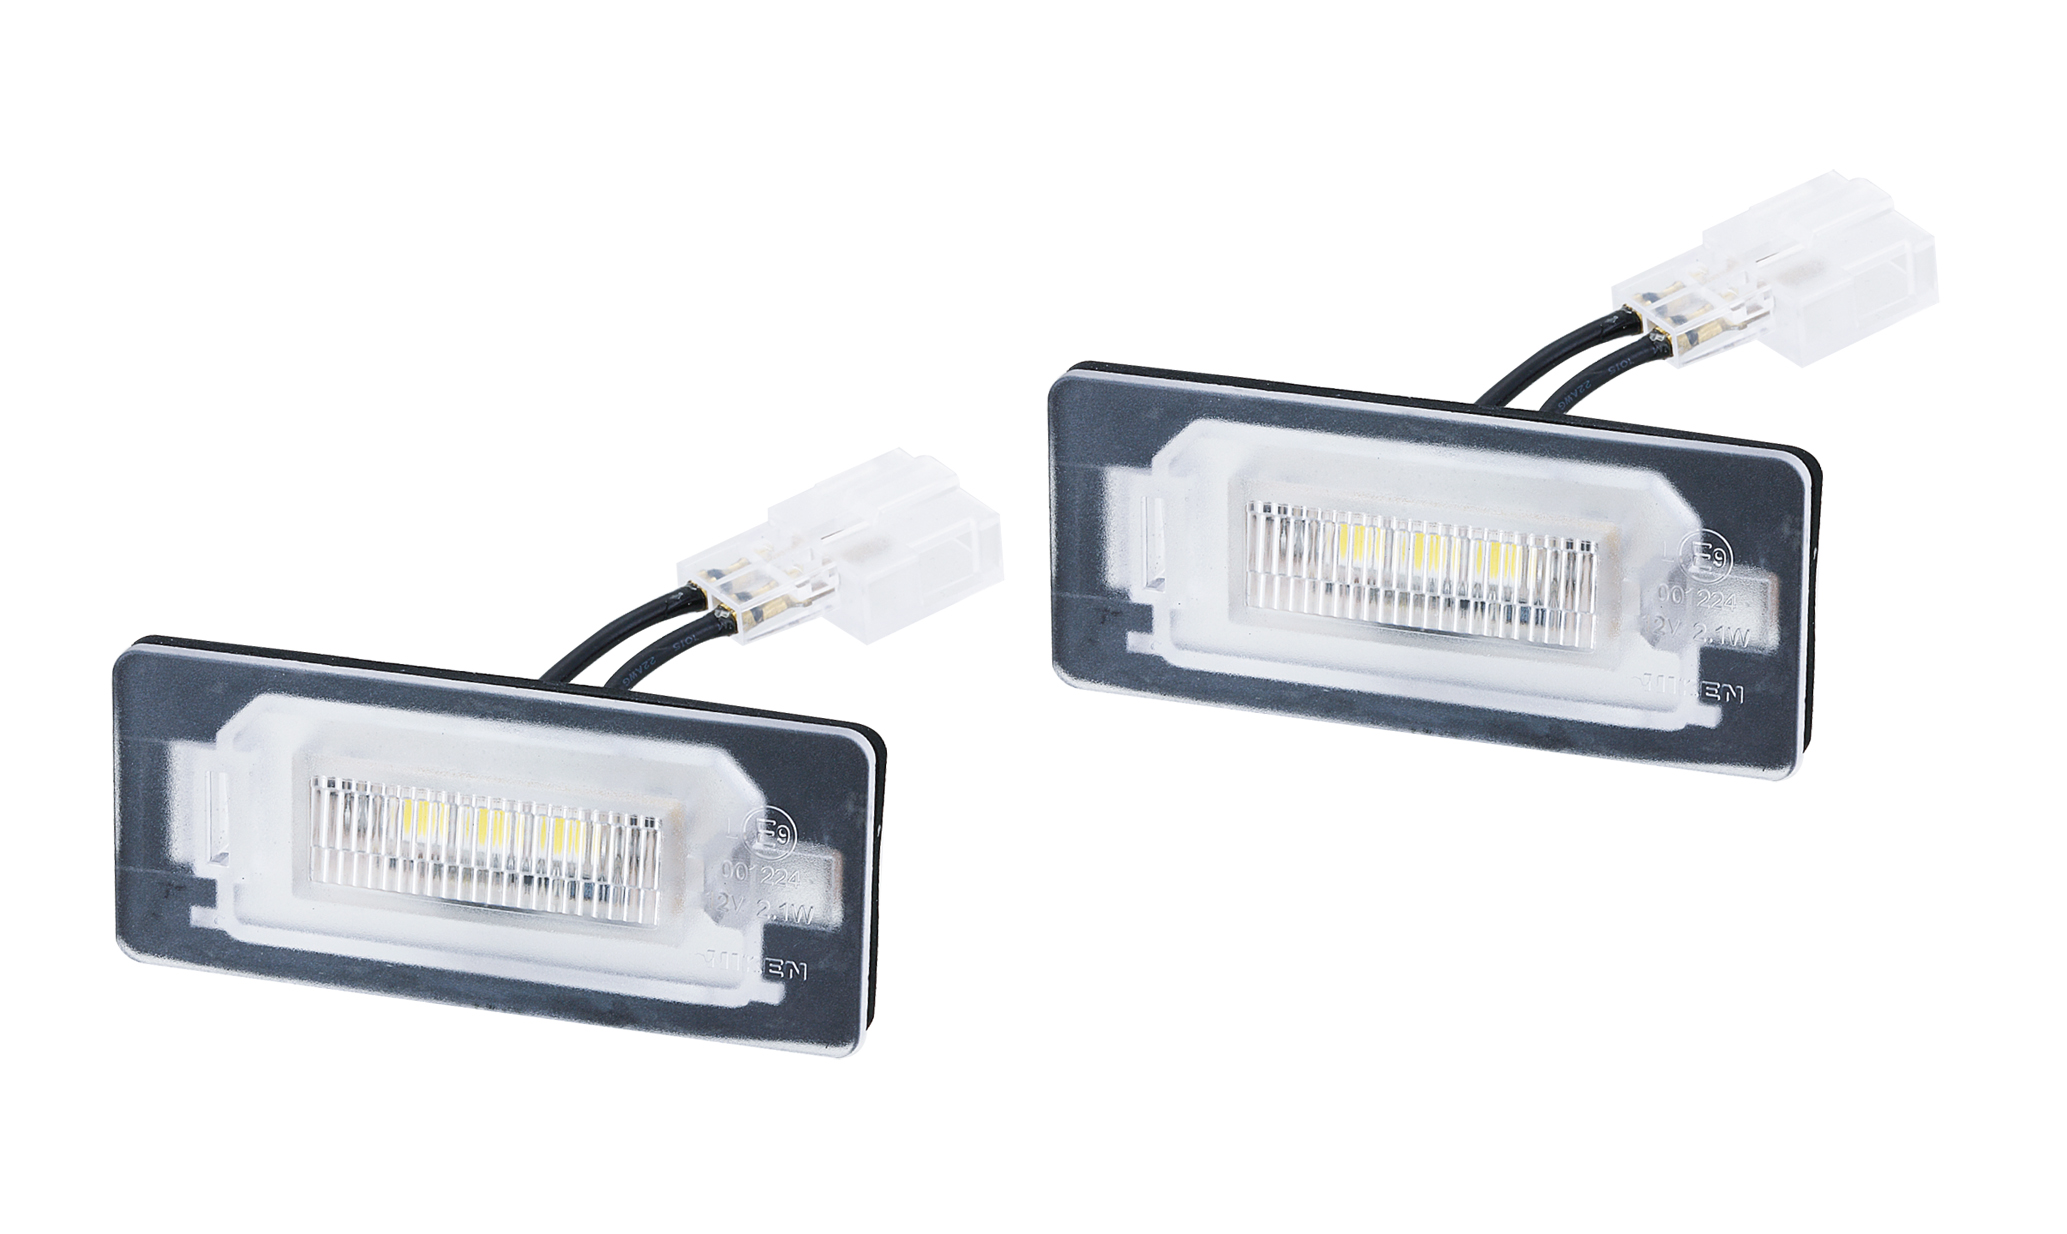 4x4 Pick Up LED License Lamp for Lighting Series made by NIKEN Vehicle Lighting Co., LTD. 首通股份有限公司 - MatchSupplier.com